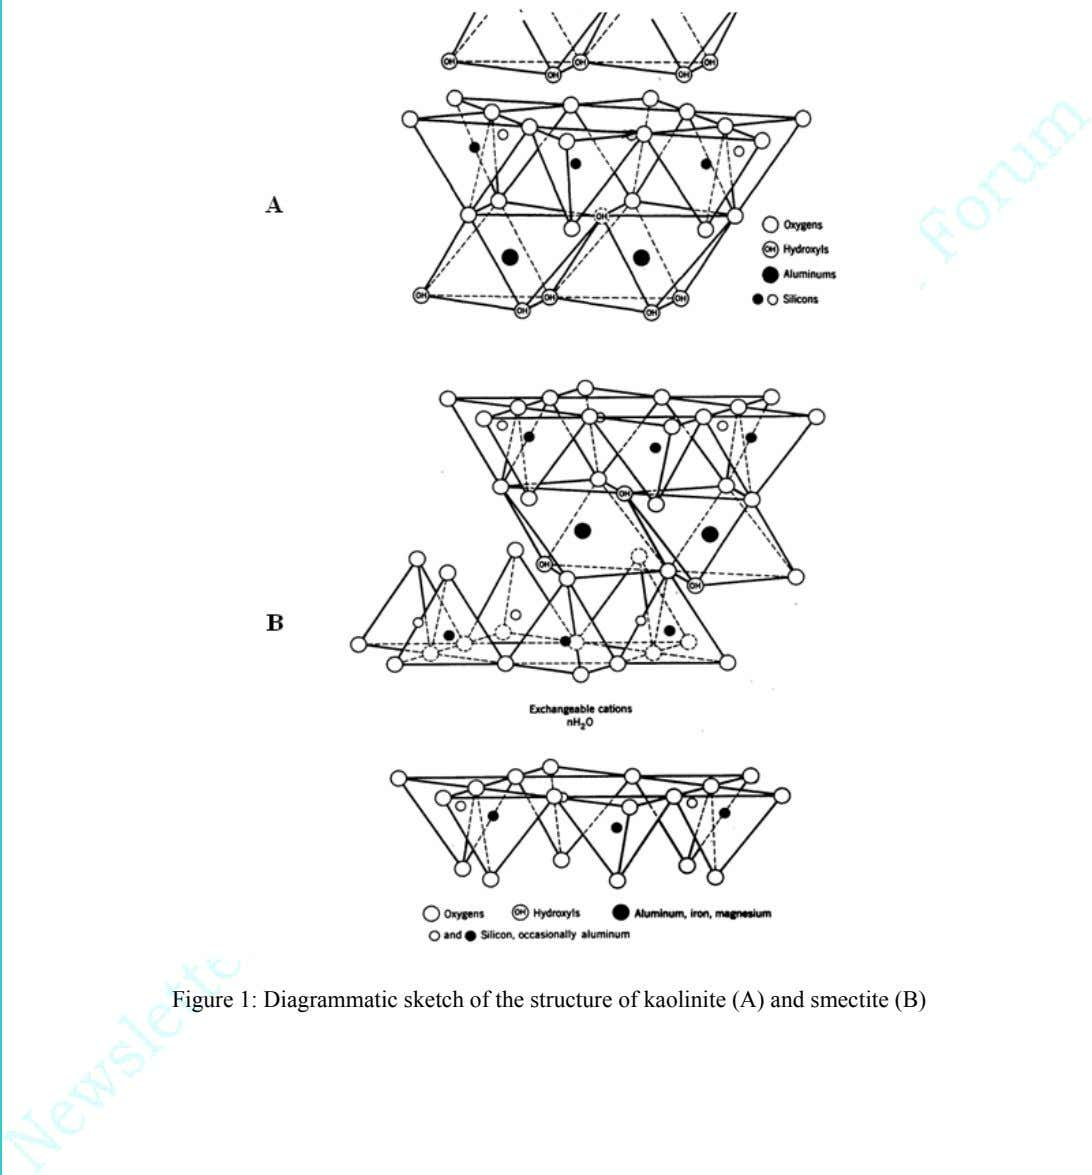 Figure 1: Diagrammatic sketch of the structure of kaolinite (A) and smectite (B)